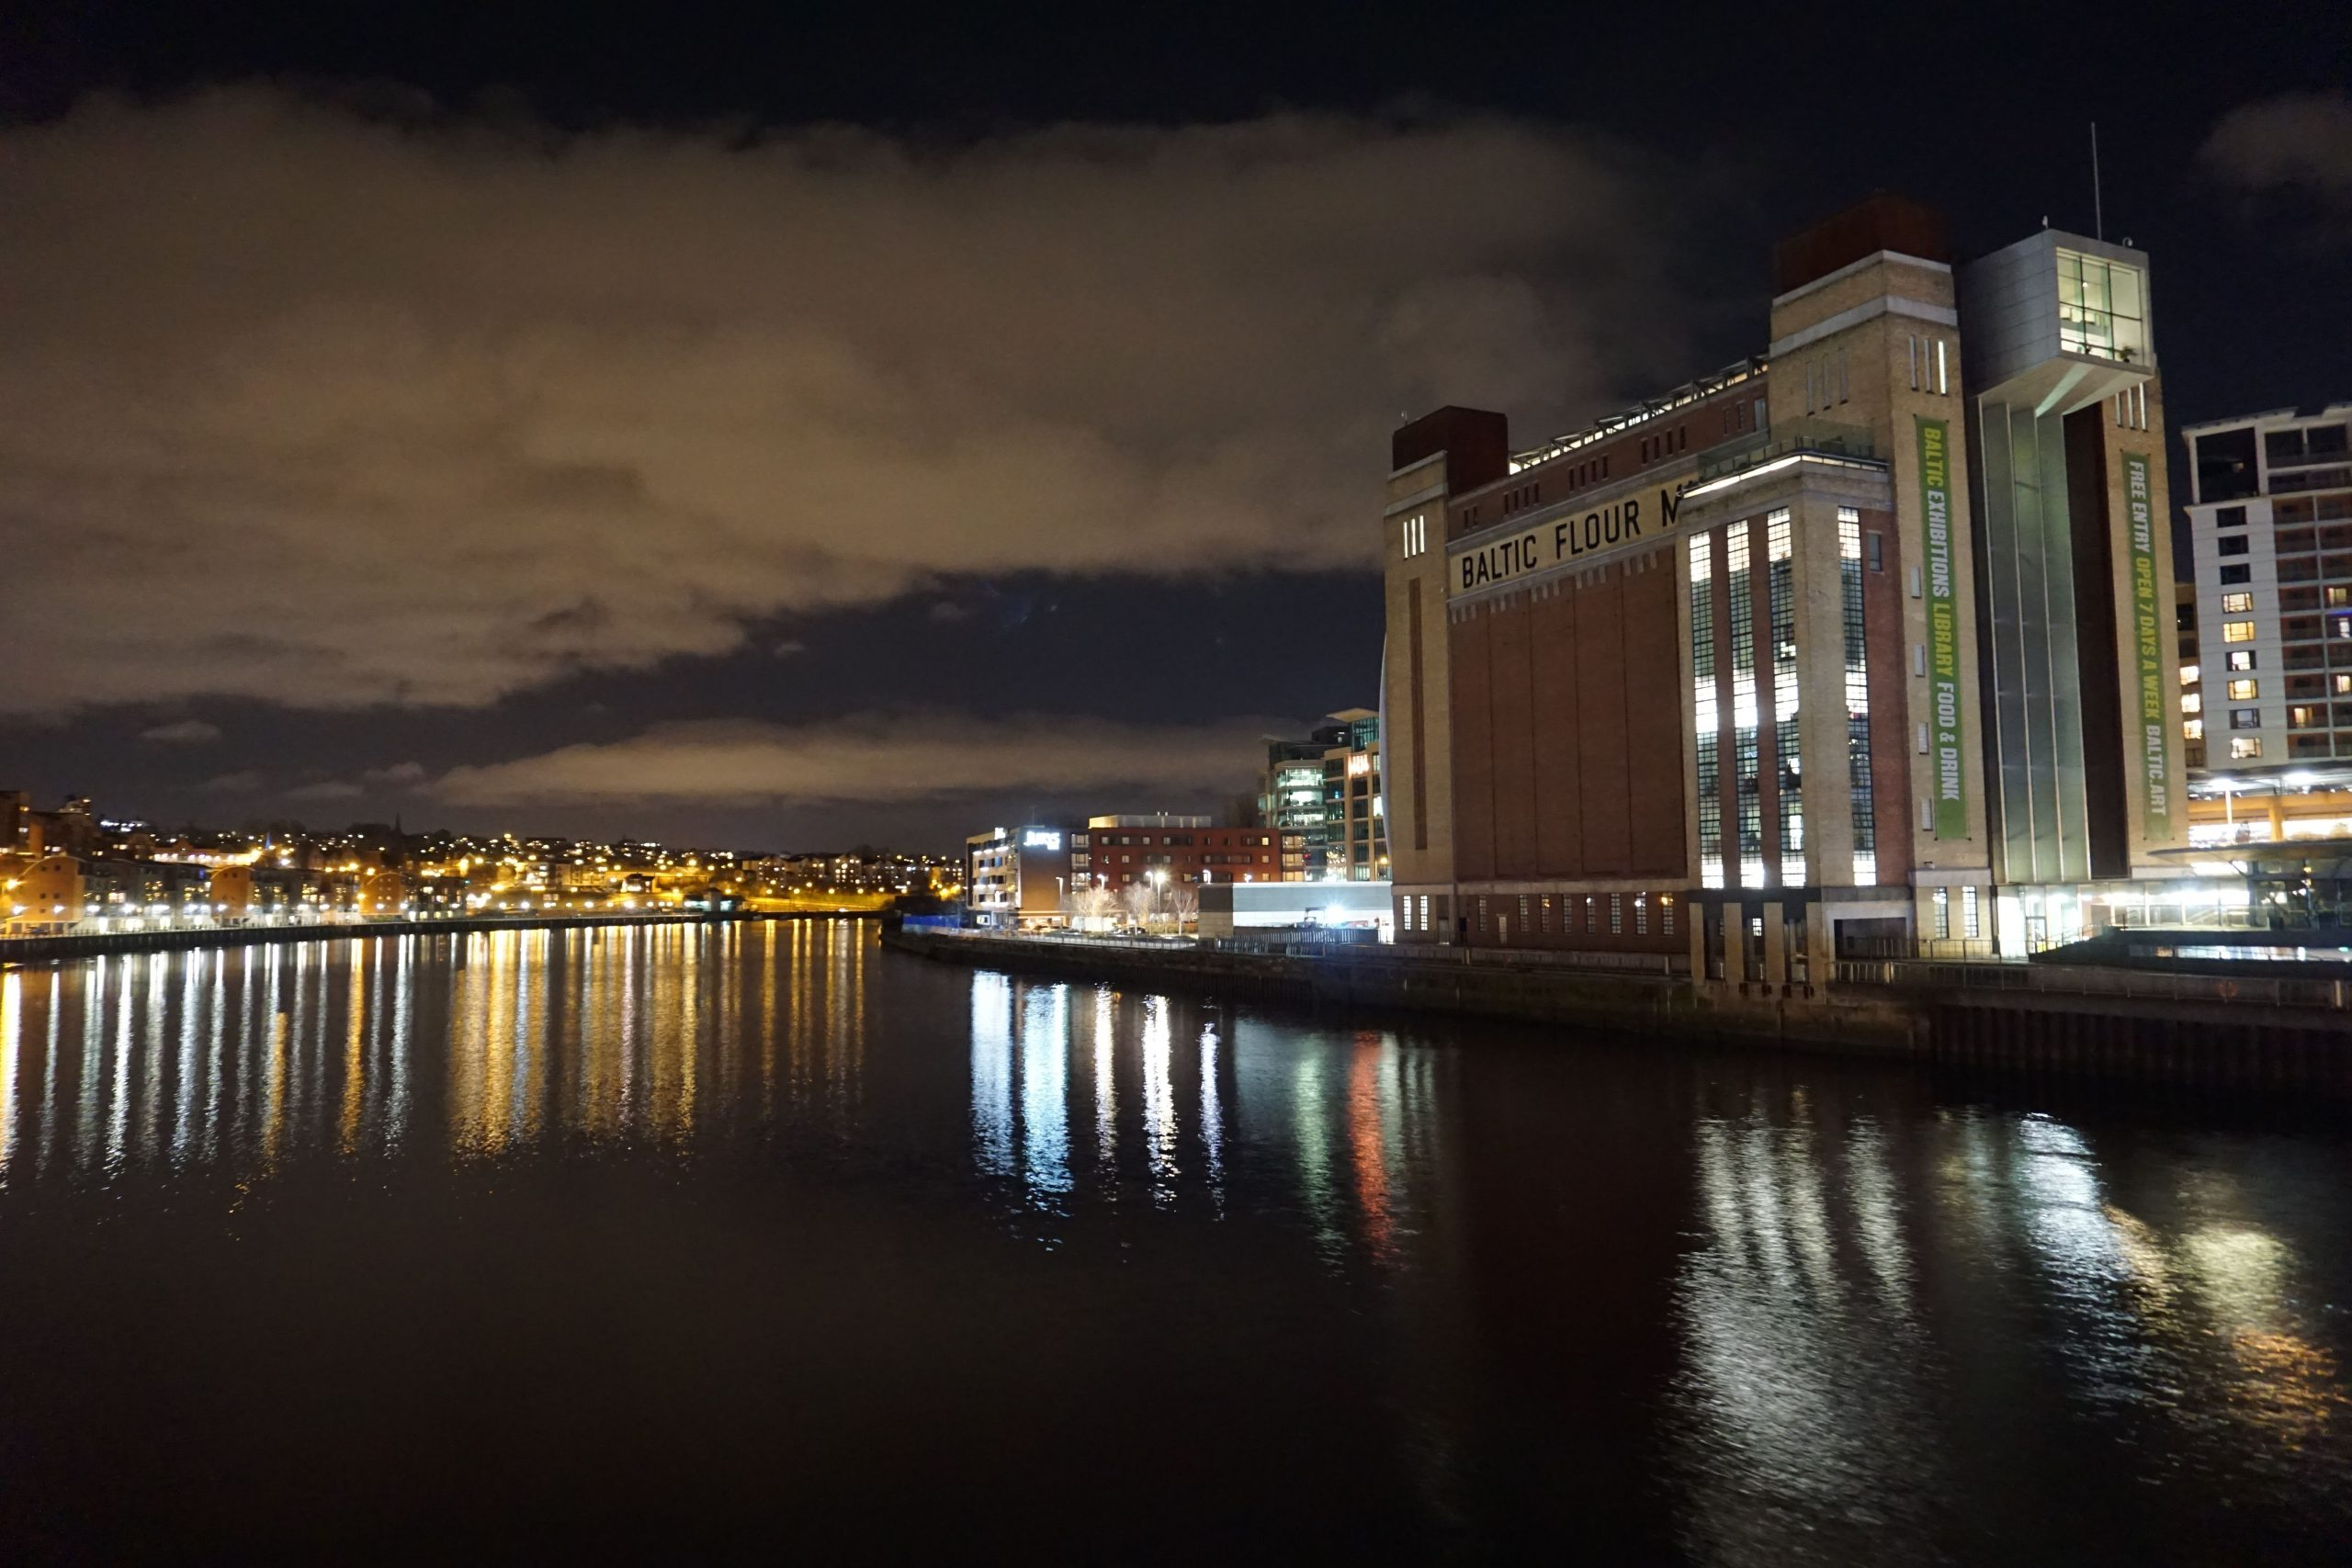 Night Photography in Newcastle